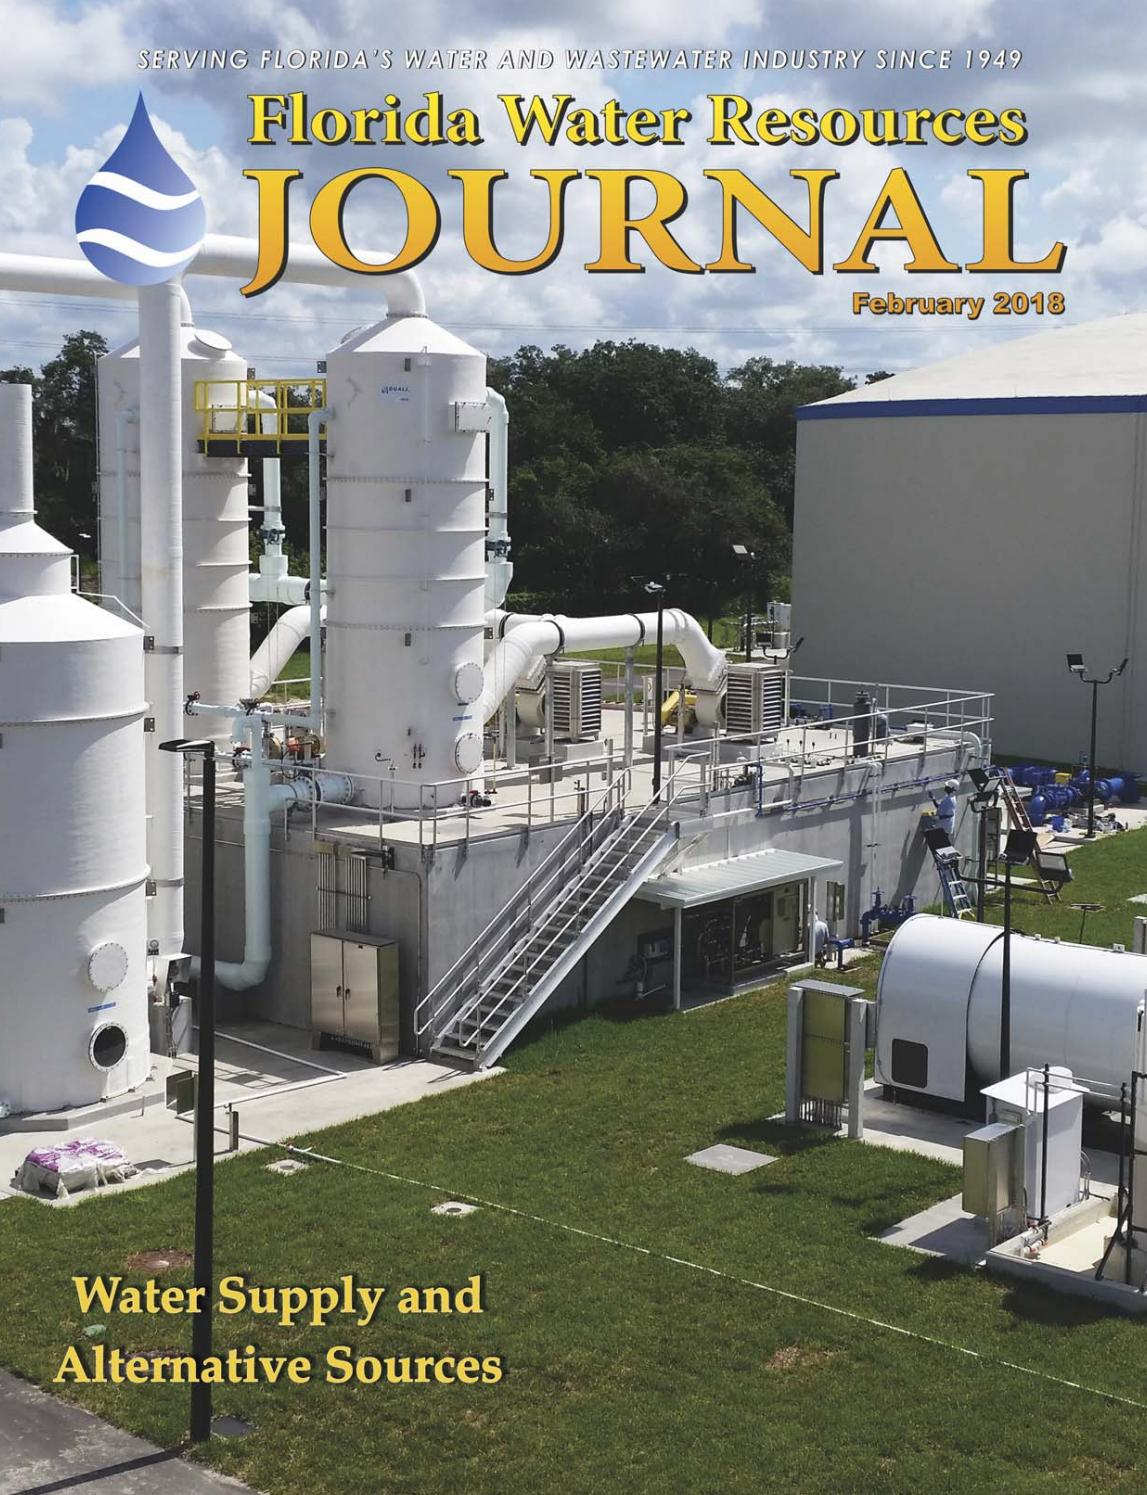 Florida Water Resources Journal - February 2018 by Florida